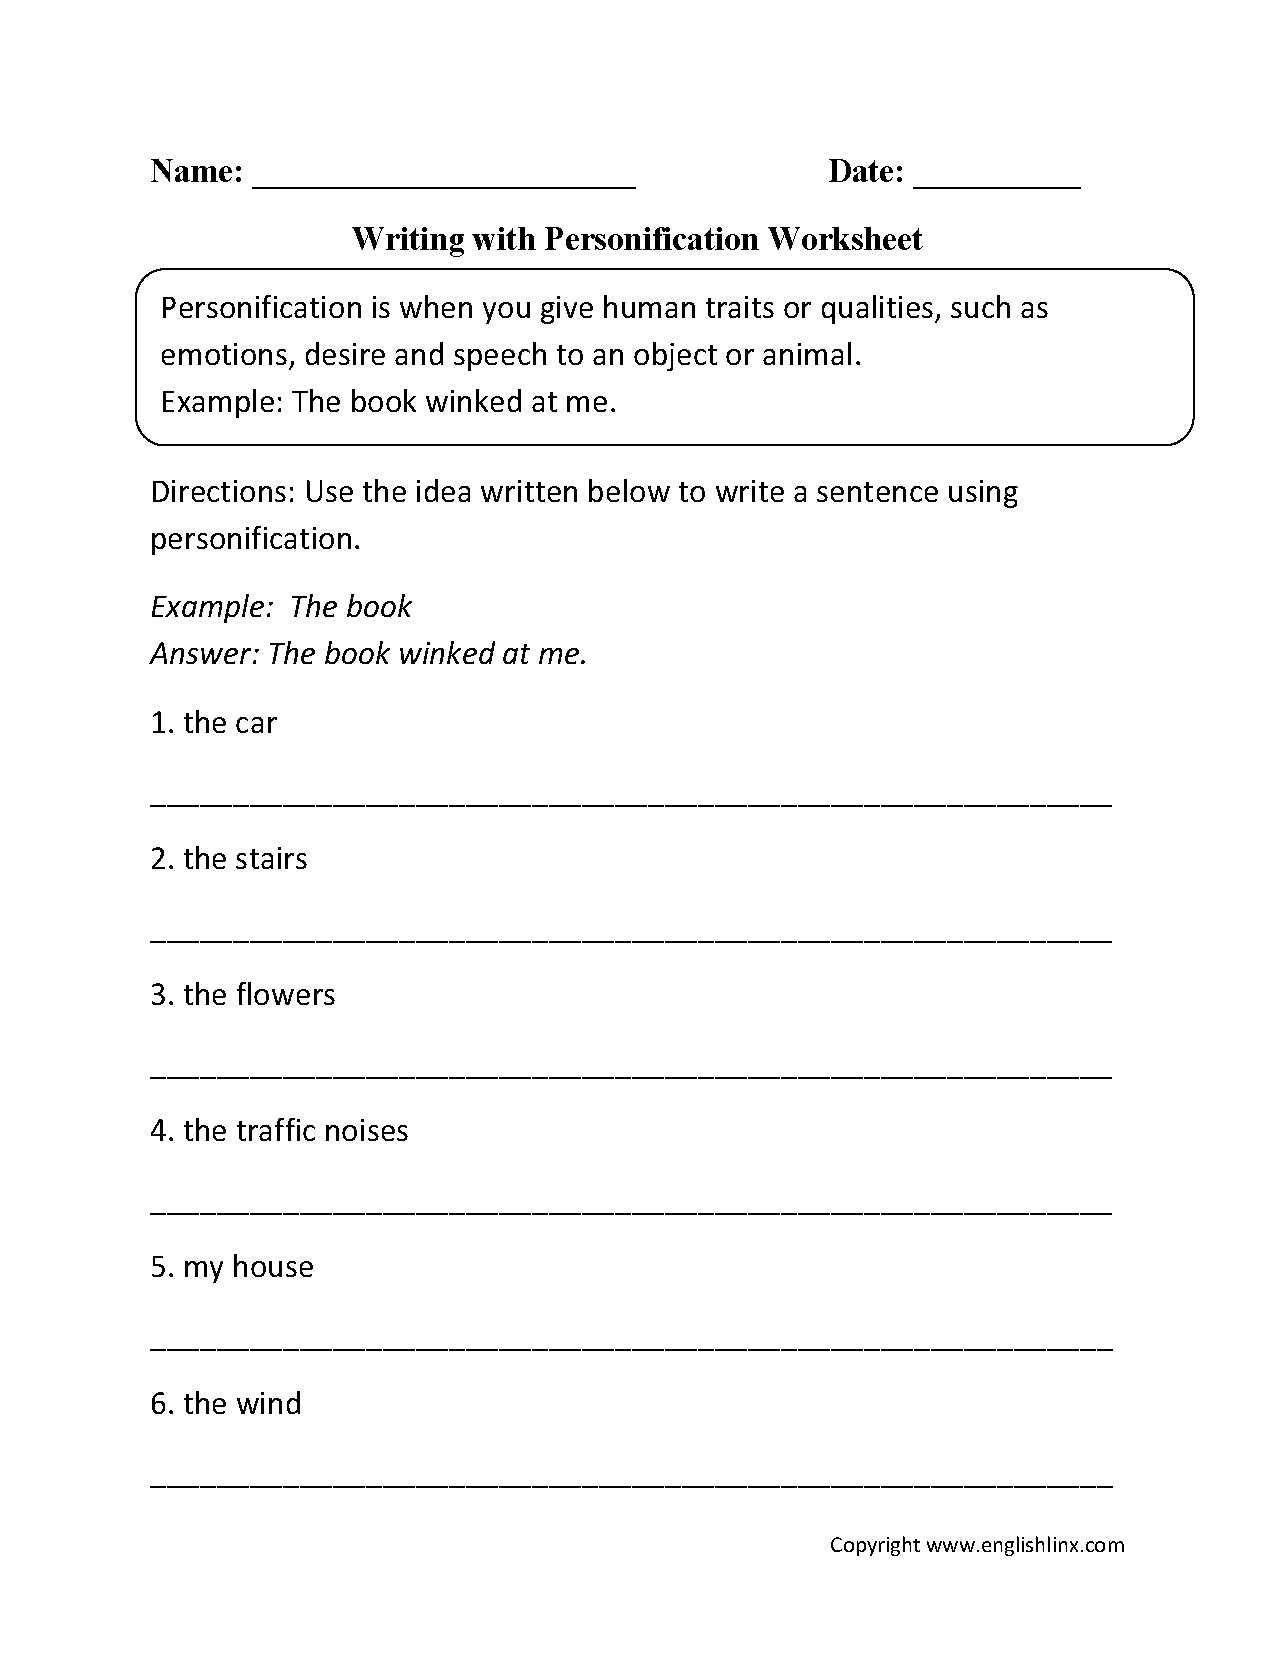 hight resolution of Writing with Personification Worksheet   Personification